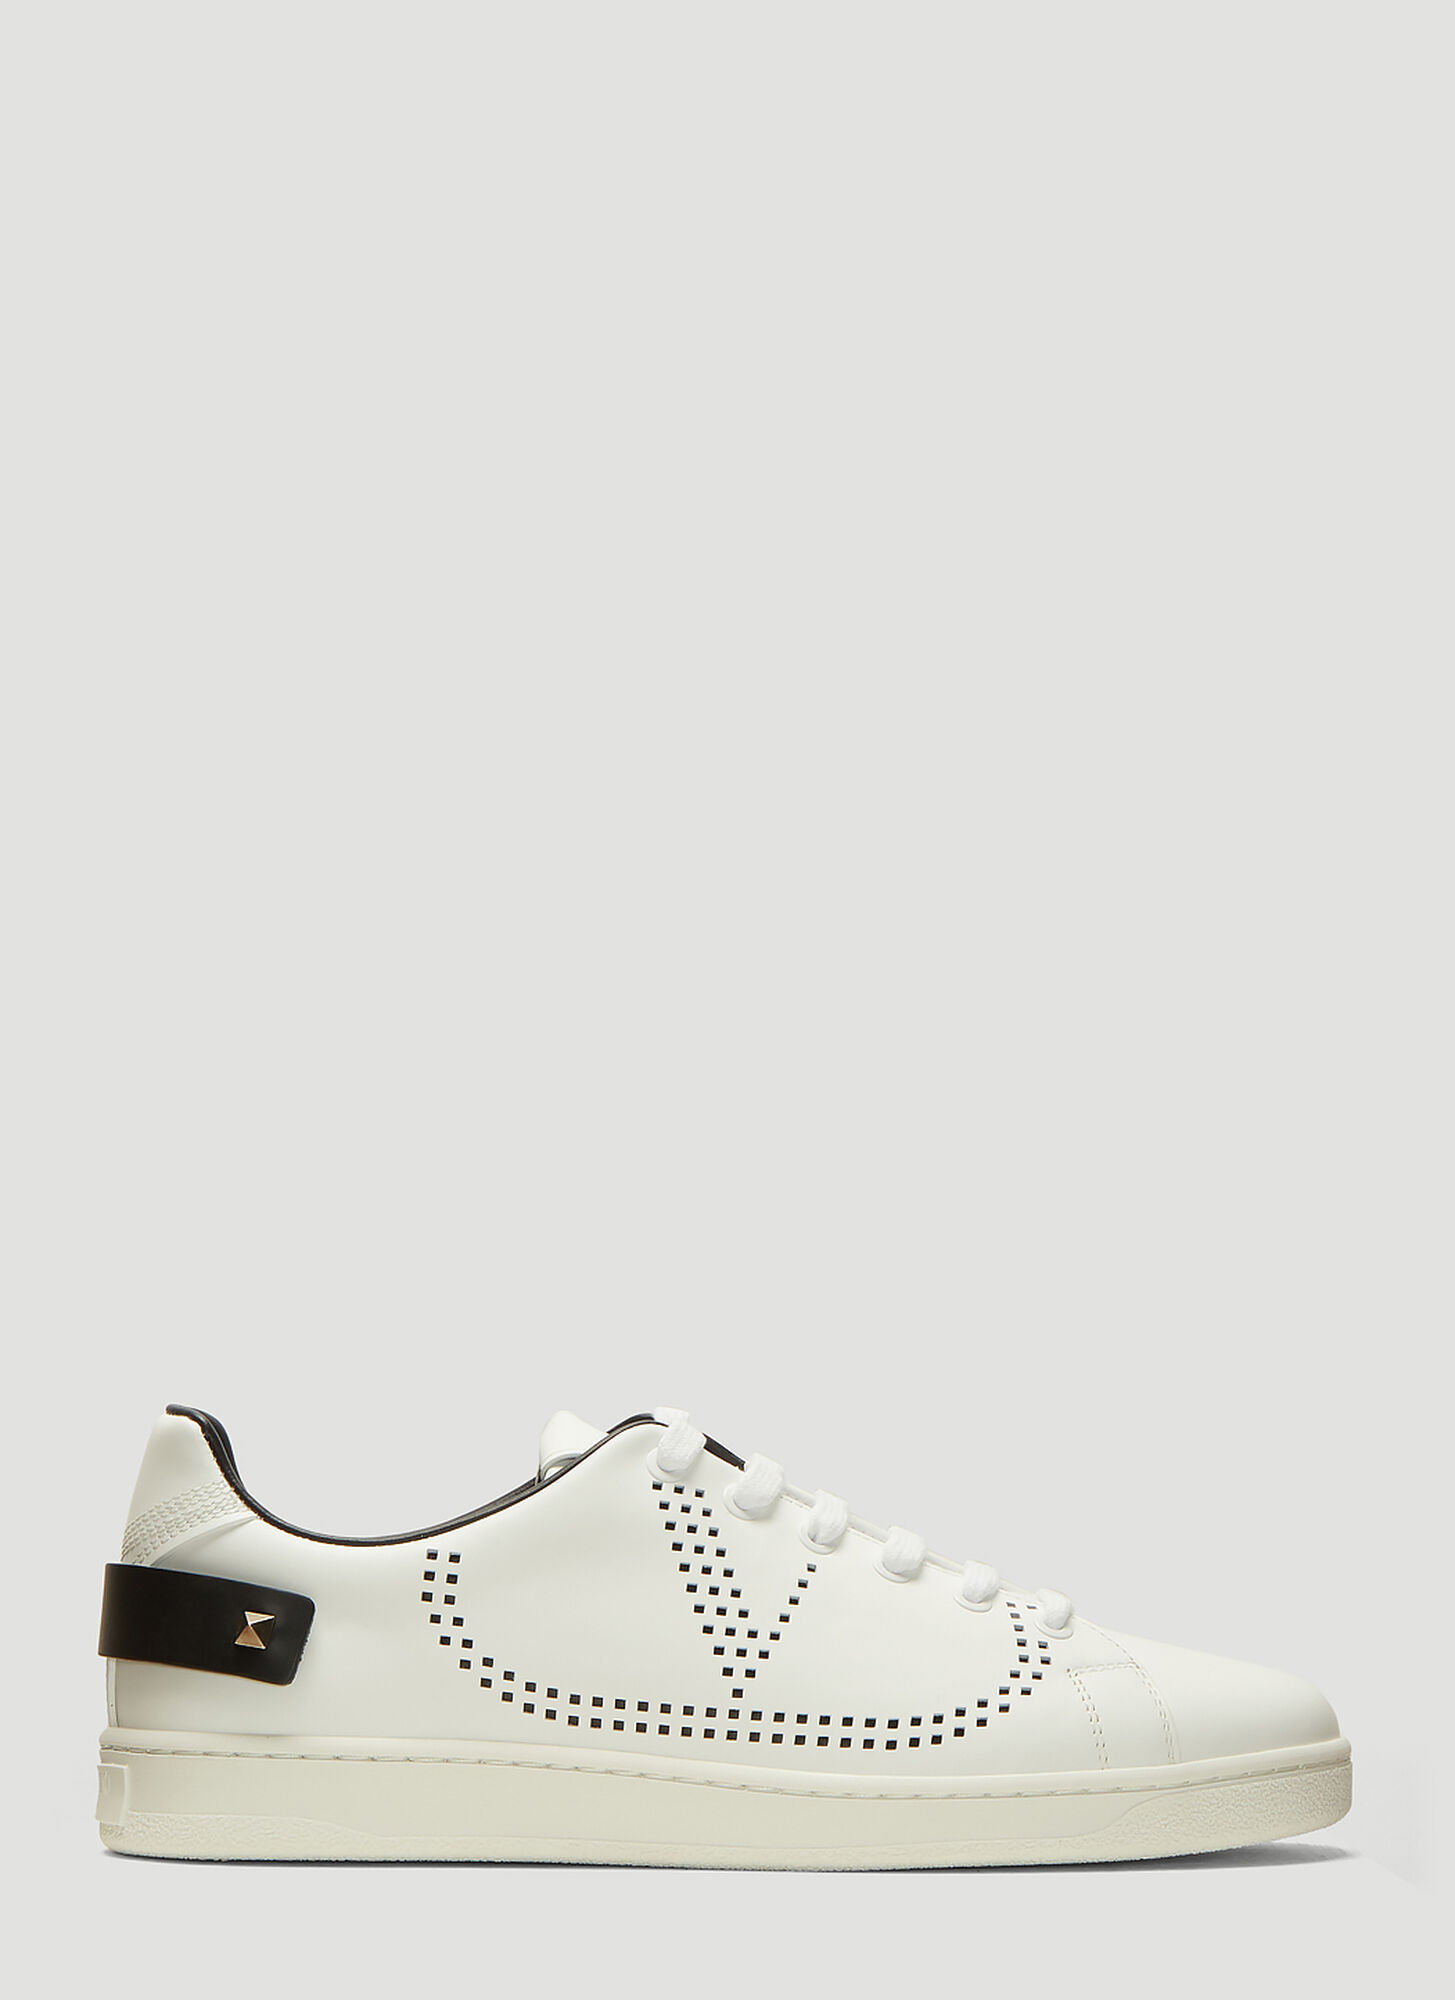 Valentino Backneck Sneaker in White